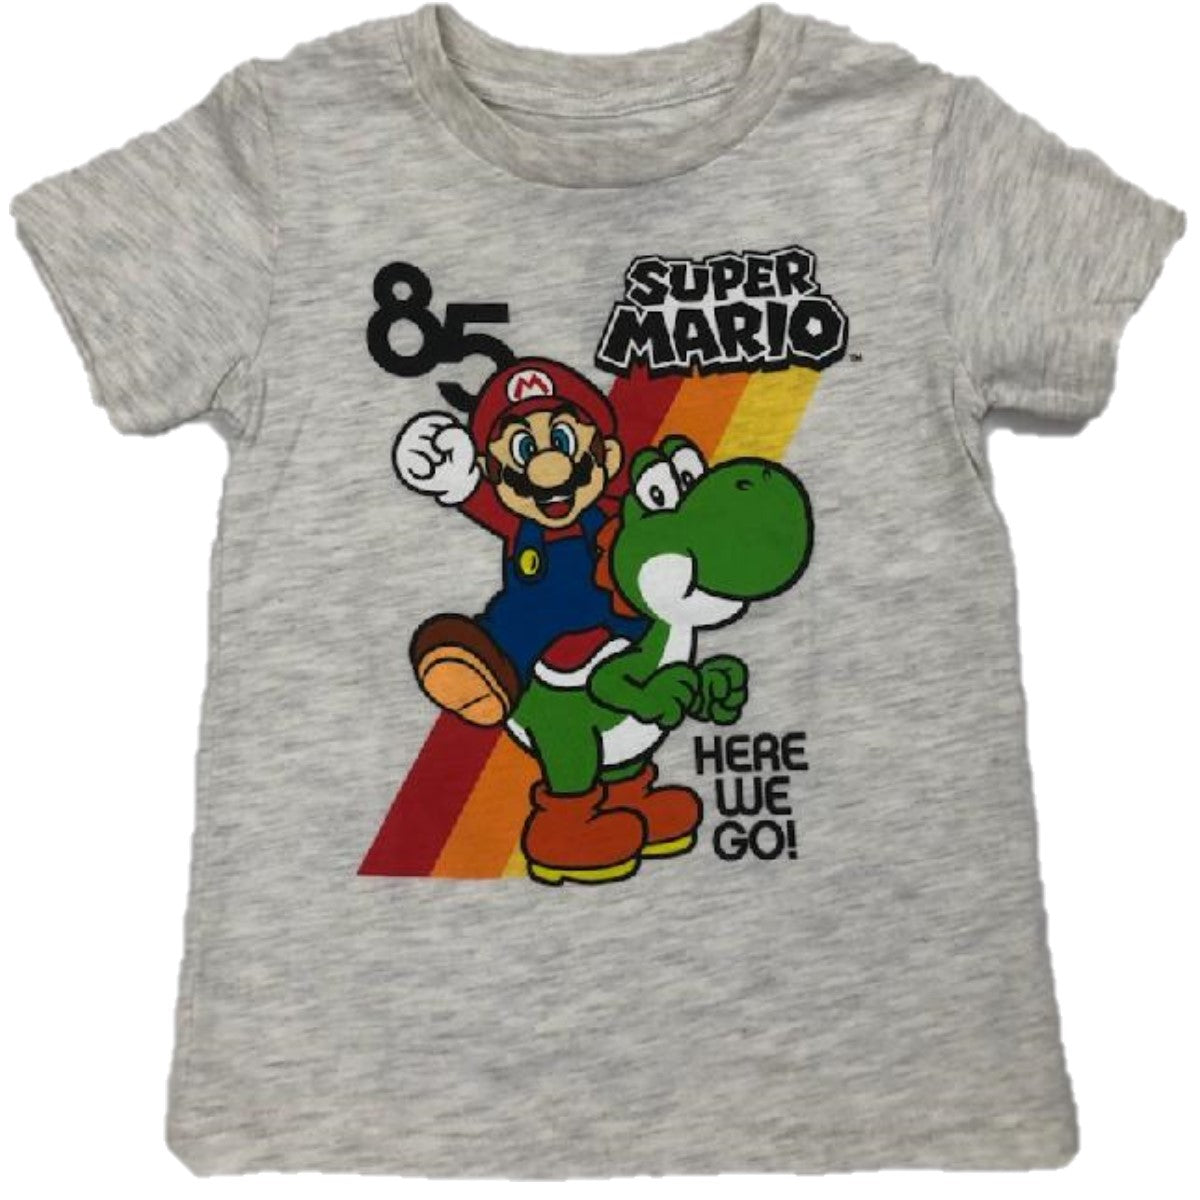 Super Mario 1985 Here We Go Mario & Yoshi Boys T-Shirt